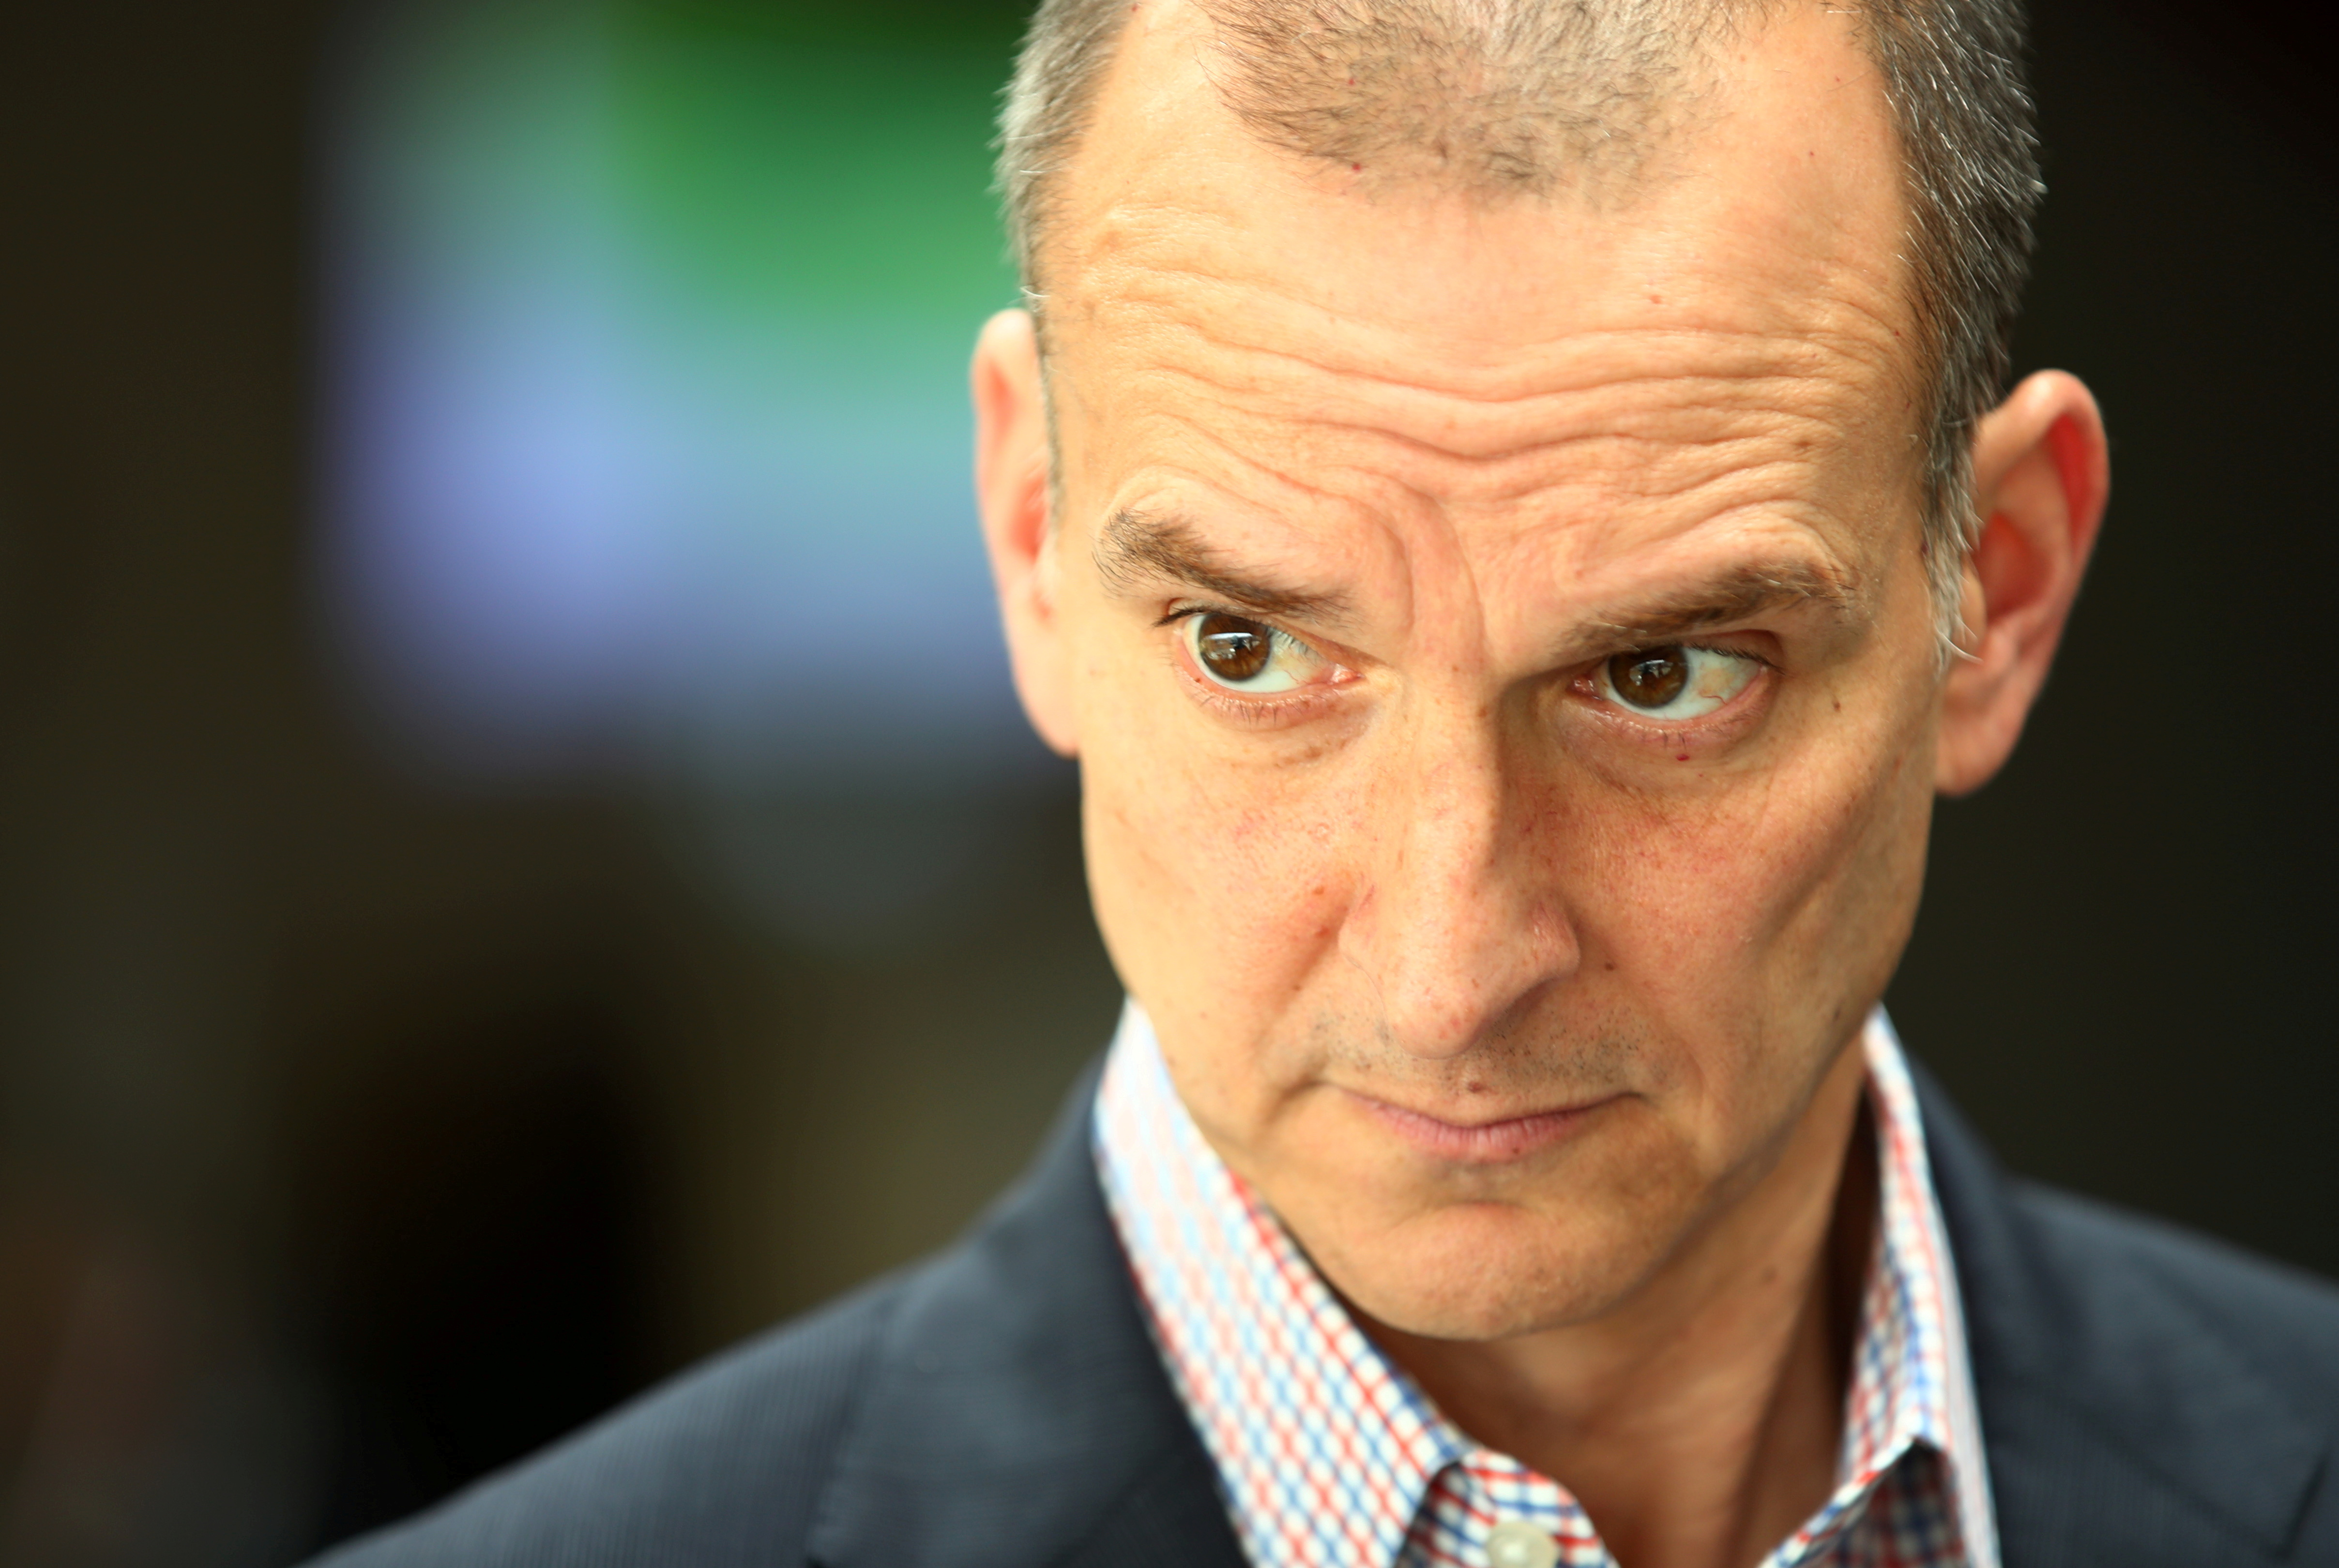 The United States Anti-Doping Agency (USDA) Chief Executive Officer, Travis Tygart, attends an interview with Reuters during the World Anti-Doping Agency (WADA) Symposium in Ecublens near Lausanne, Switzerland, March 13, 2019. REUTERS/Denis Balibouse/File Photo